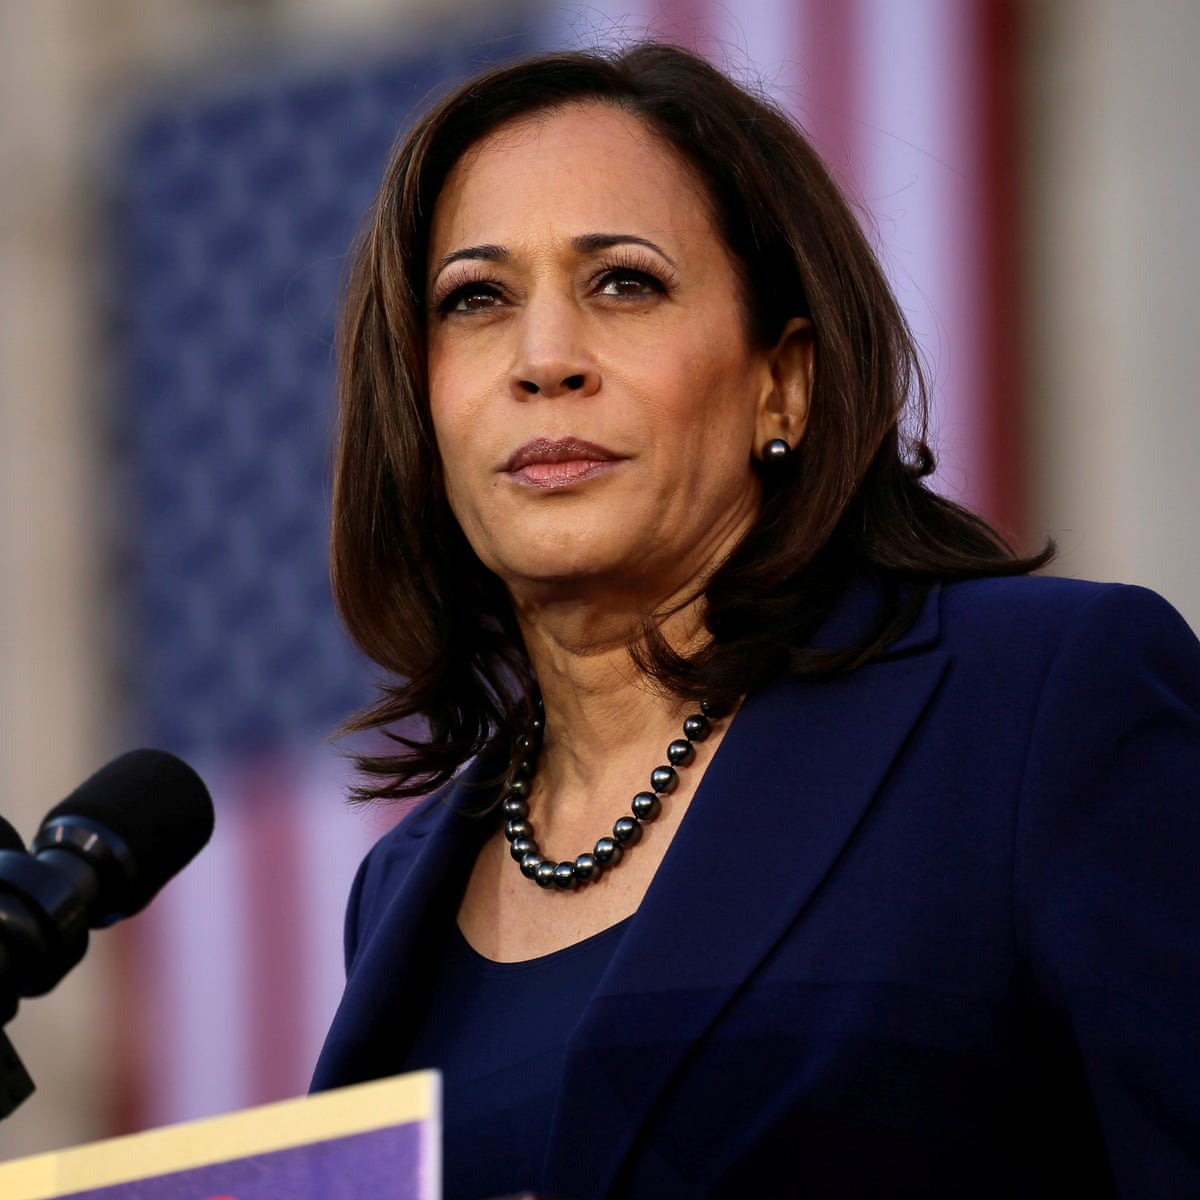 In This Dystopian World Kamala Harris Sails Above The Presidential Bar Richard Wolffe Opinion The Guardian